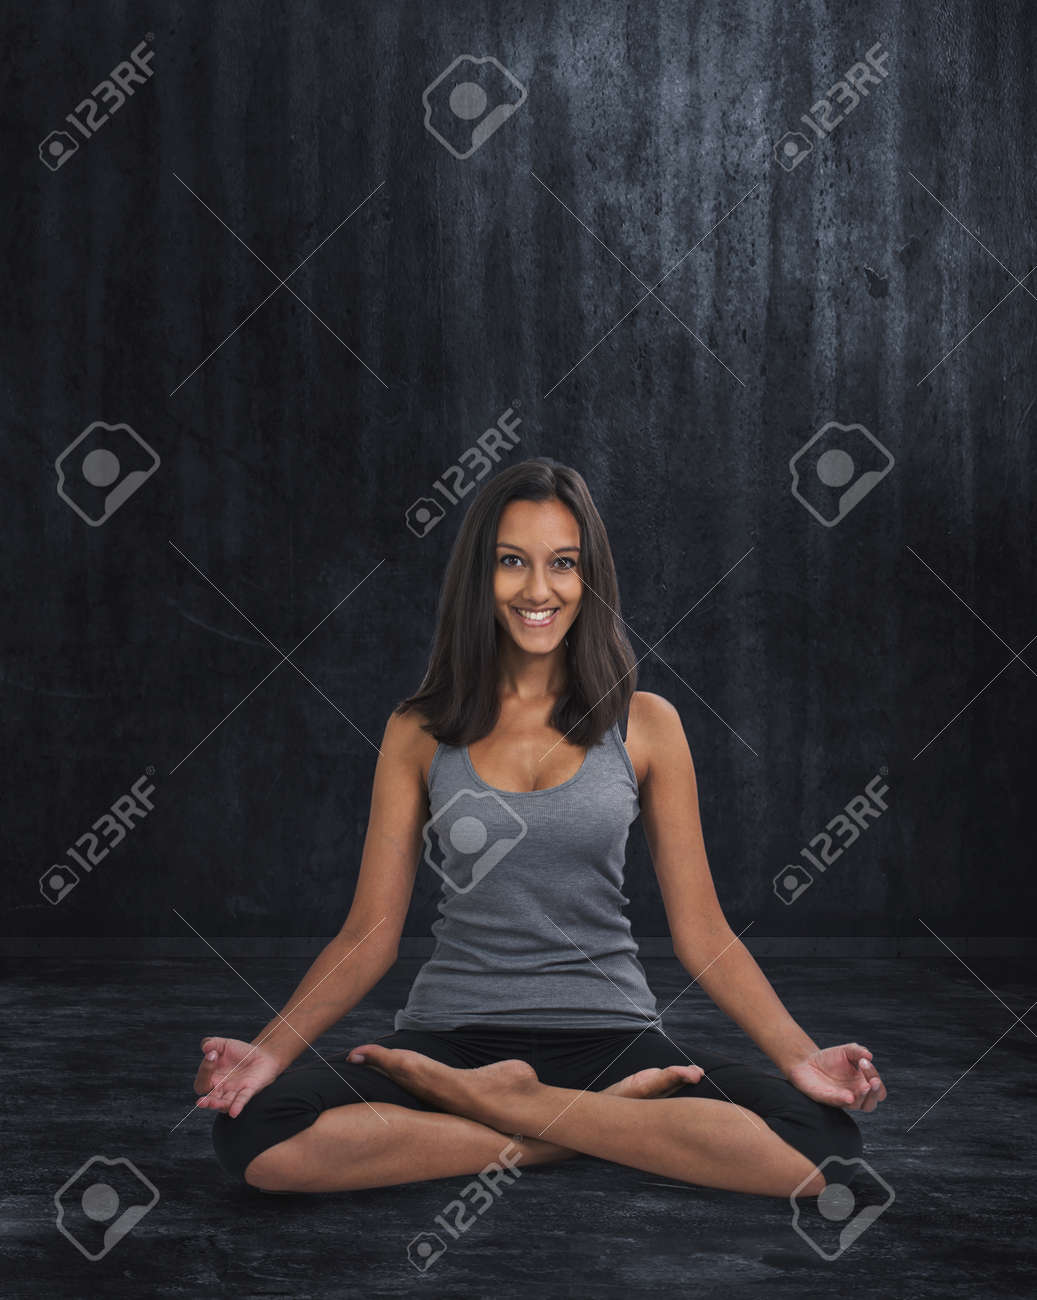 Full Length Portrait Of Smiling Relaxed Indian Woman Practicing Stock Photo Picture And Royalty Free Image Image 72991327